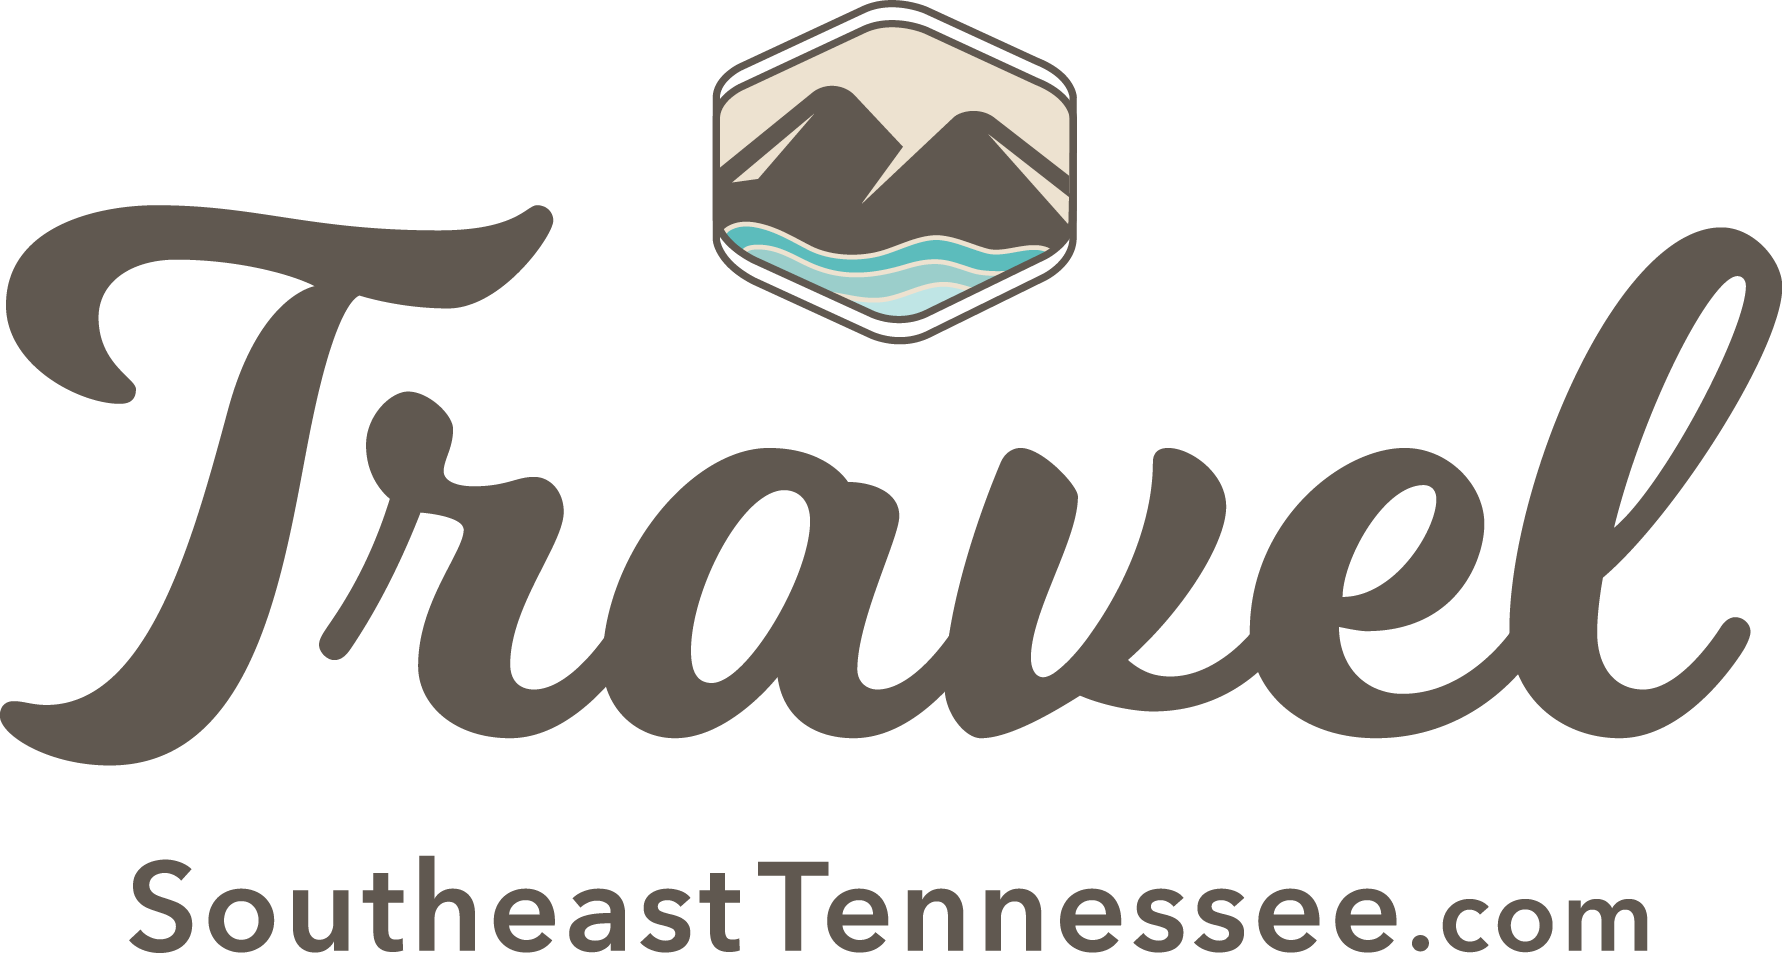 Travel Southeast Tennessee Logo